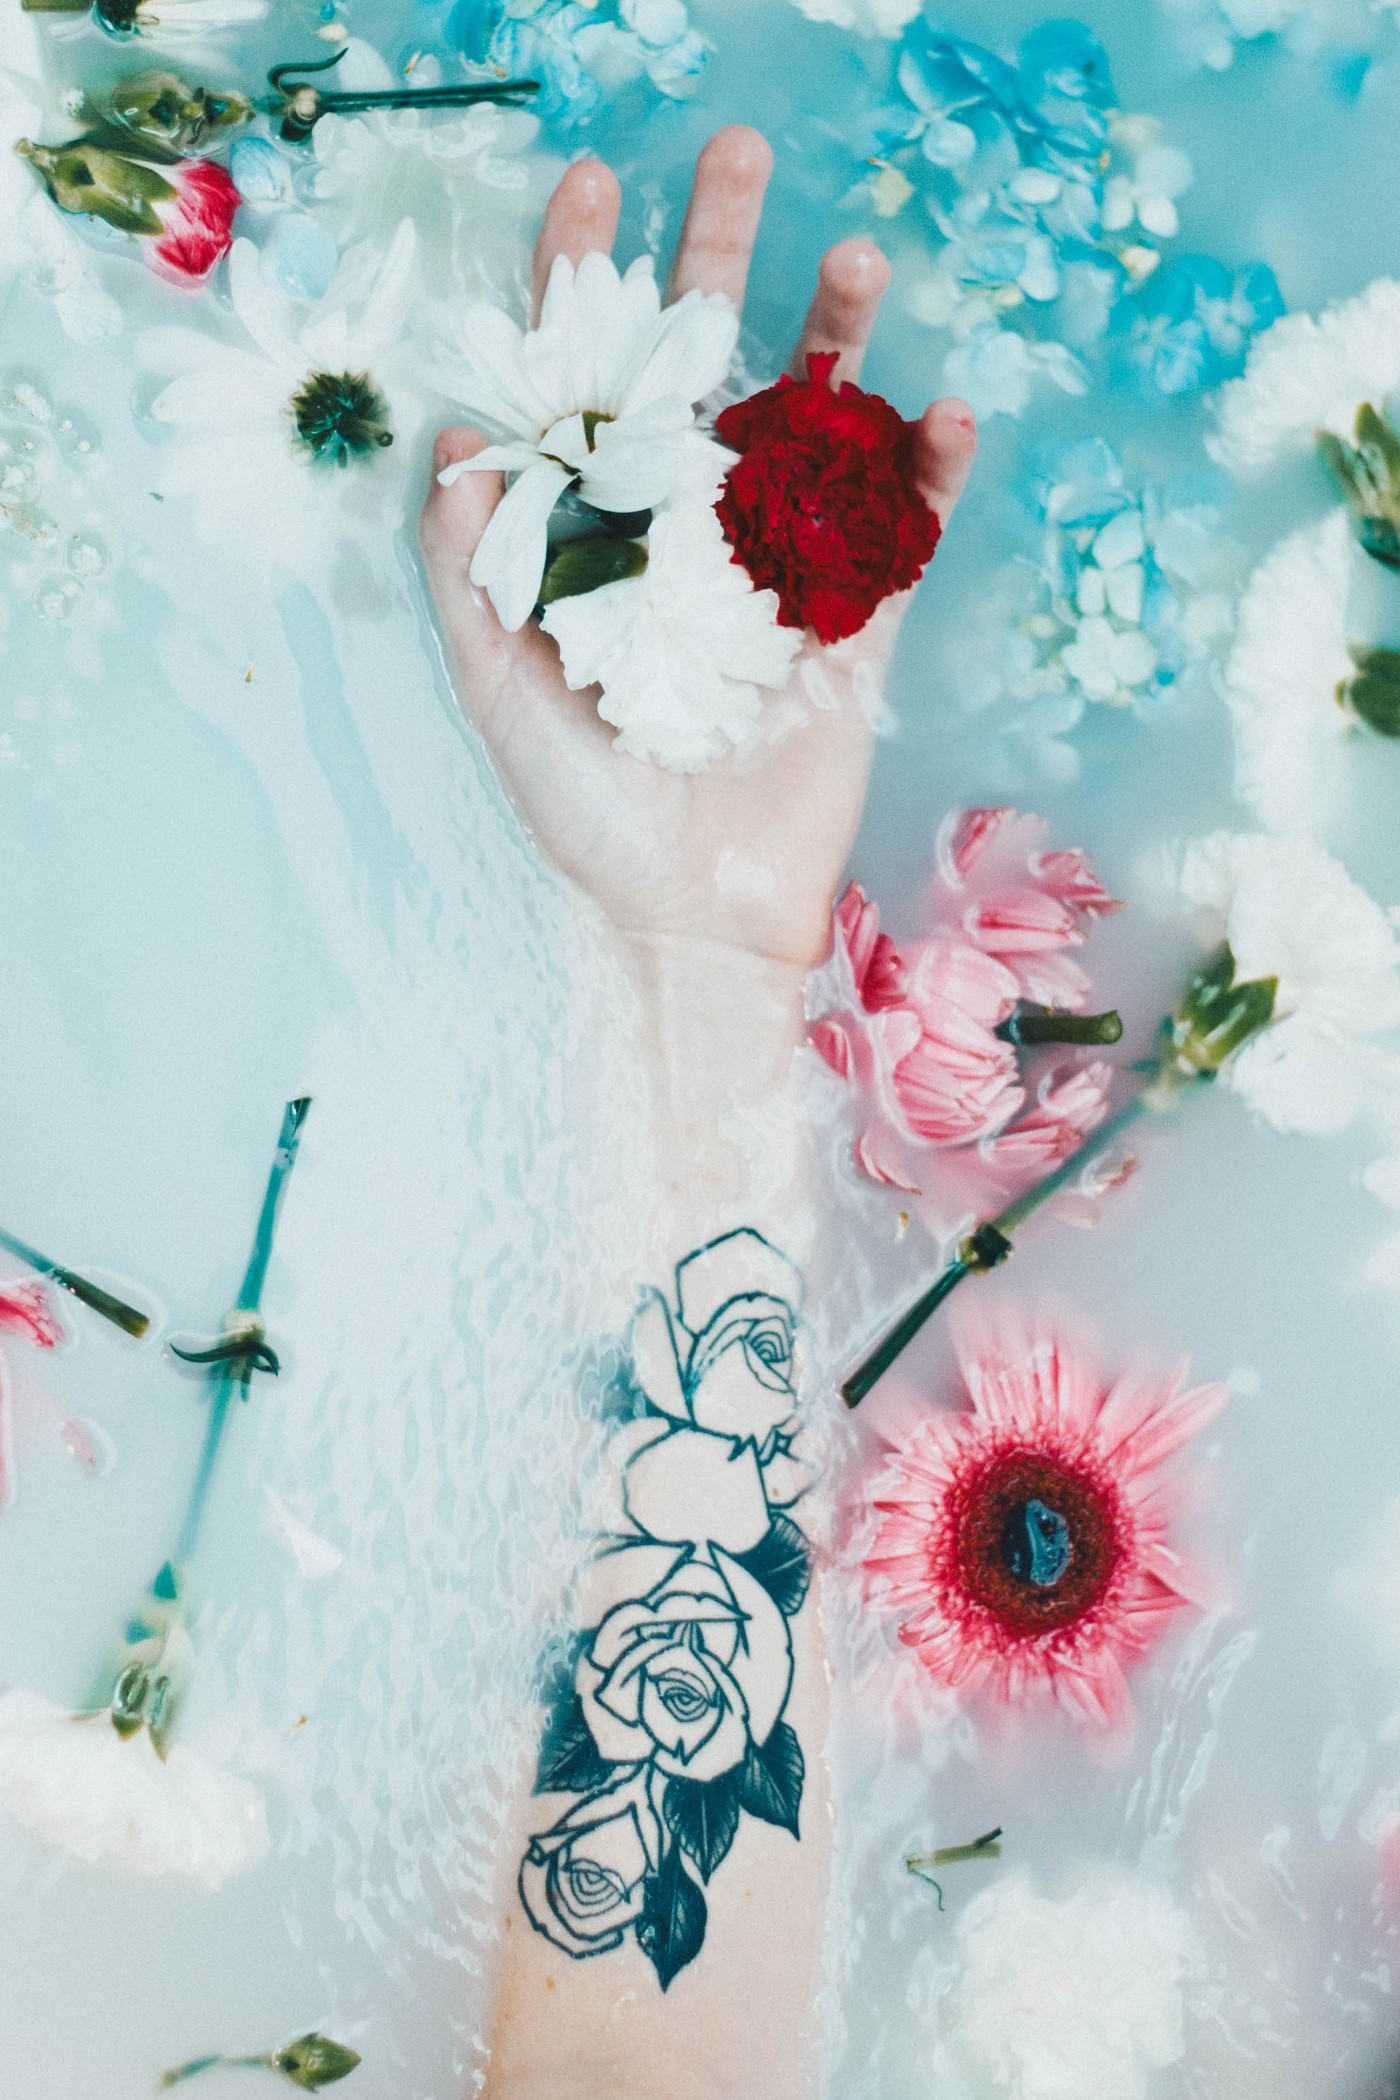 A woman's arm floating in a bathtub full of flower petals.